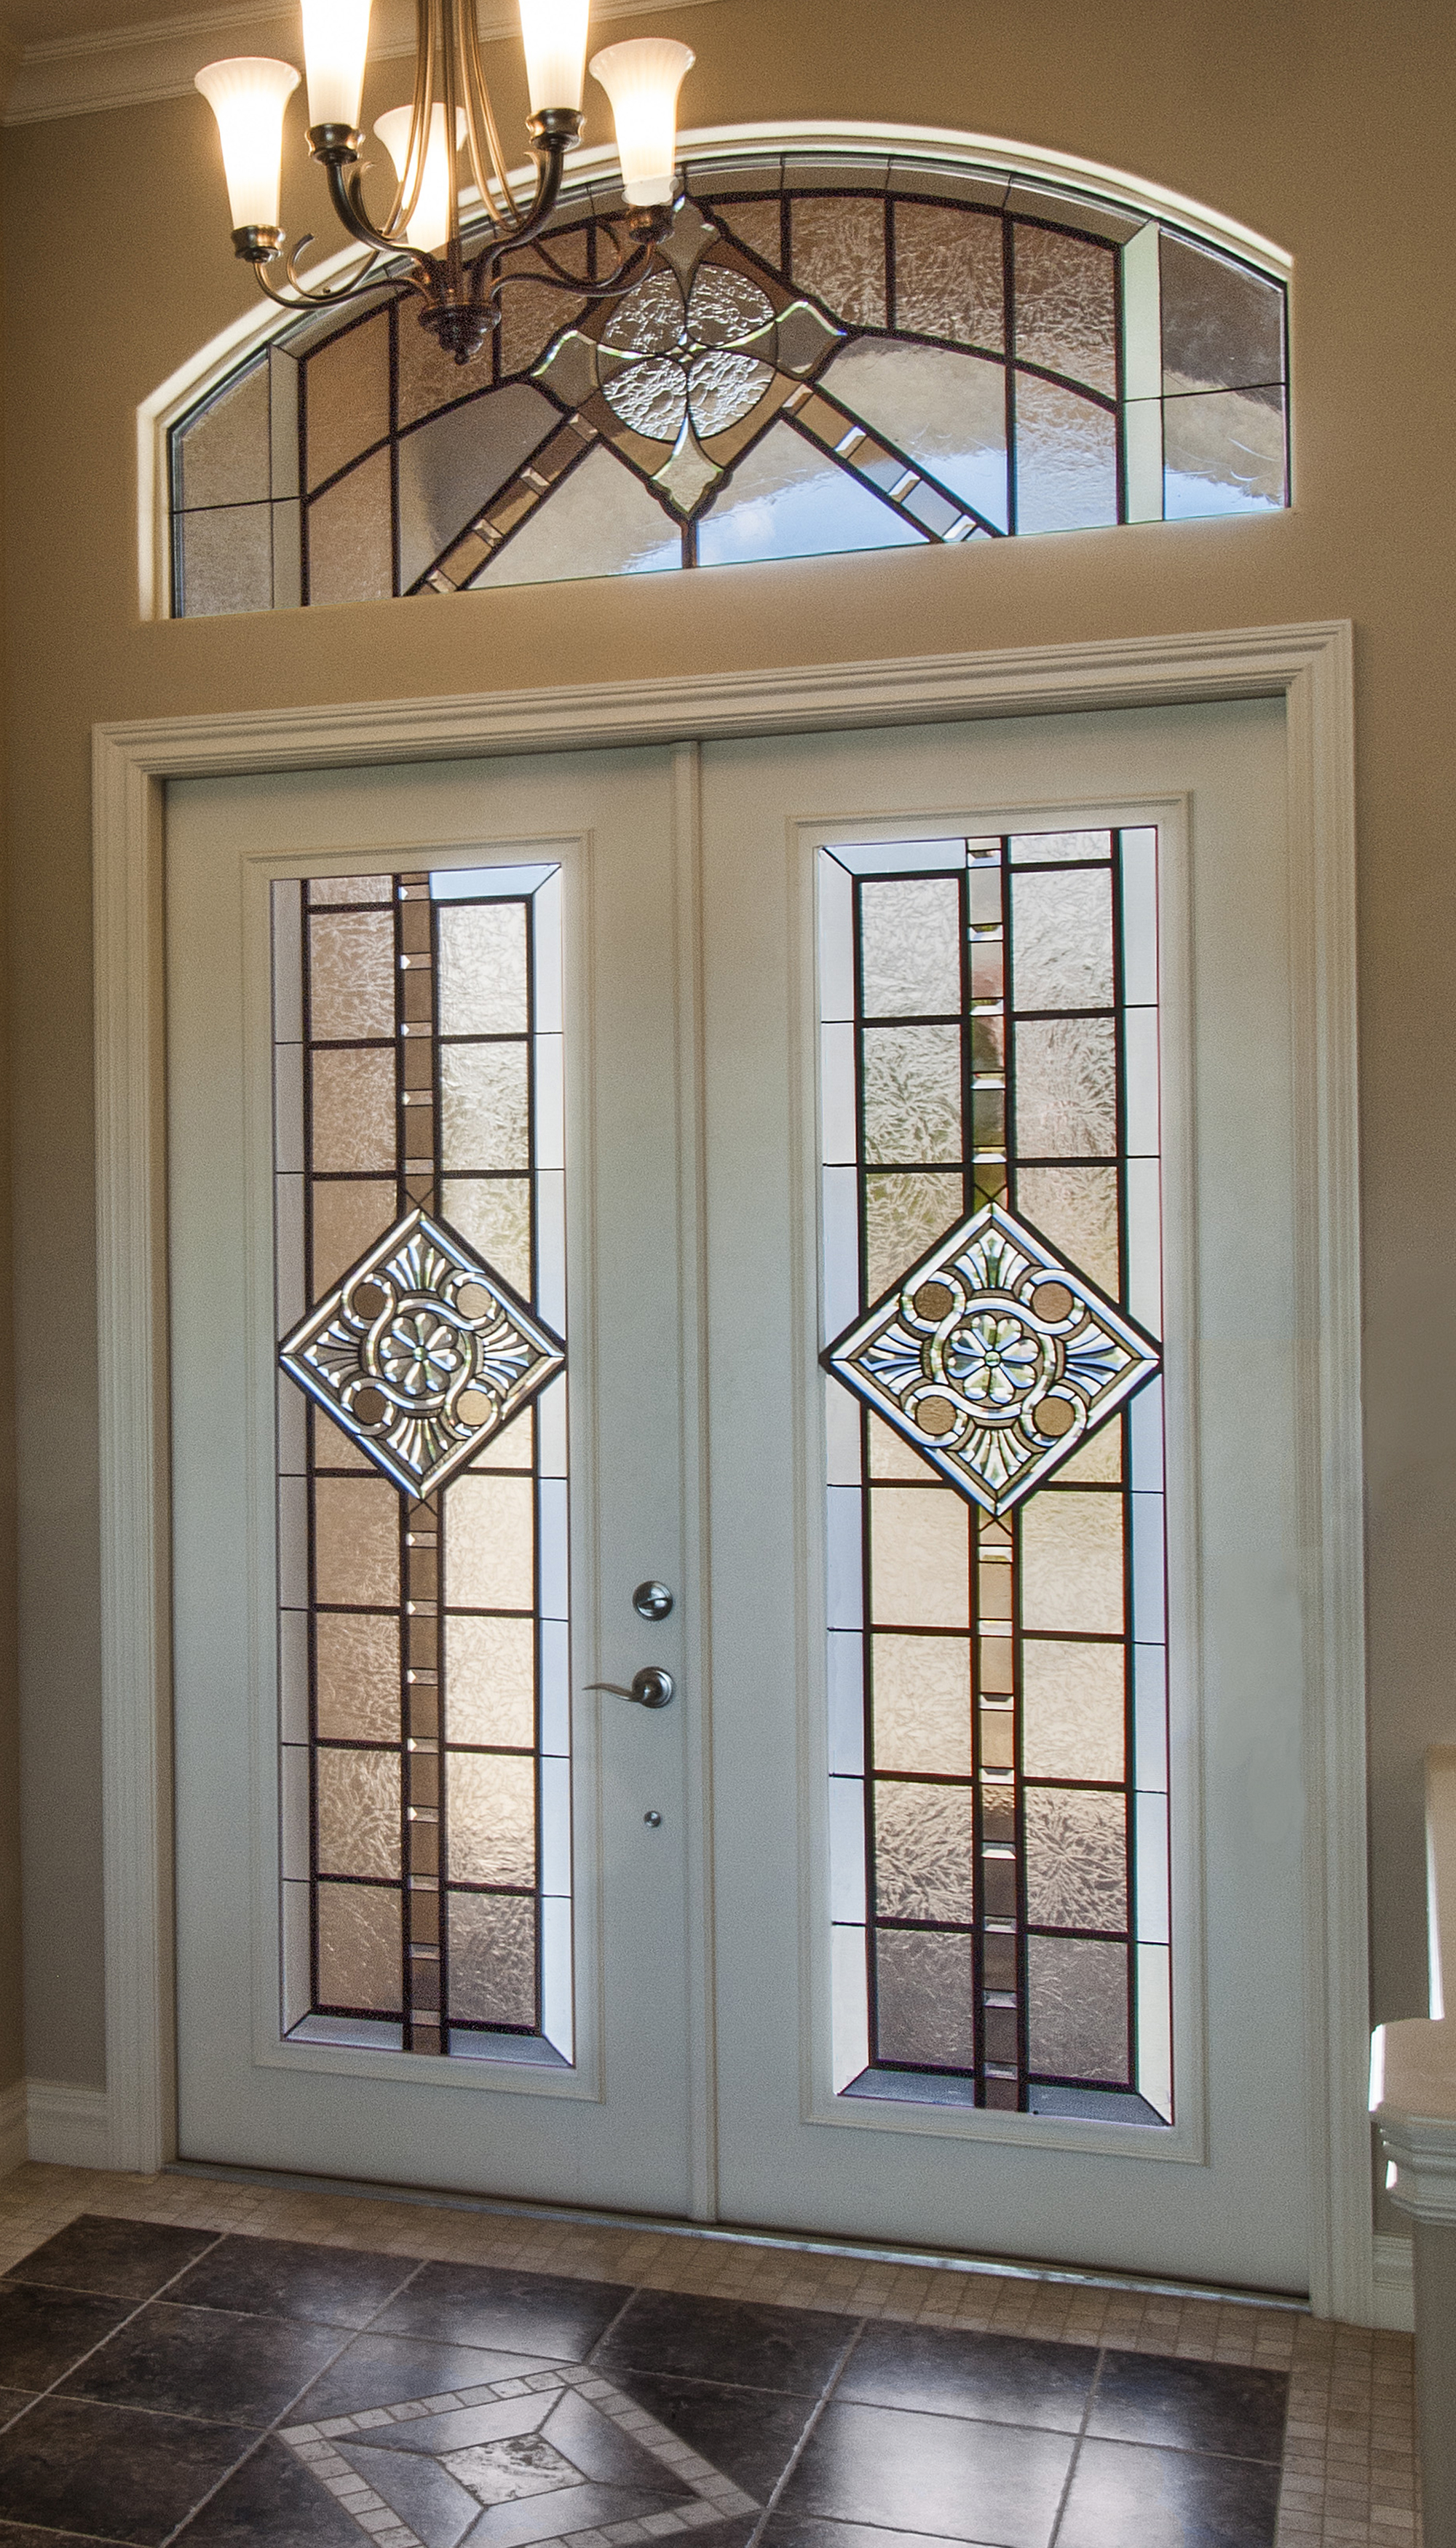 Transitional modern approach to entrance design by Preston Studios featuring faux wrought iron